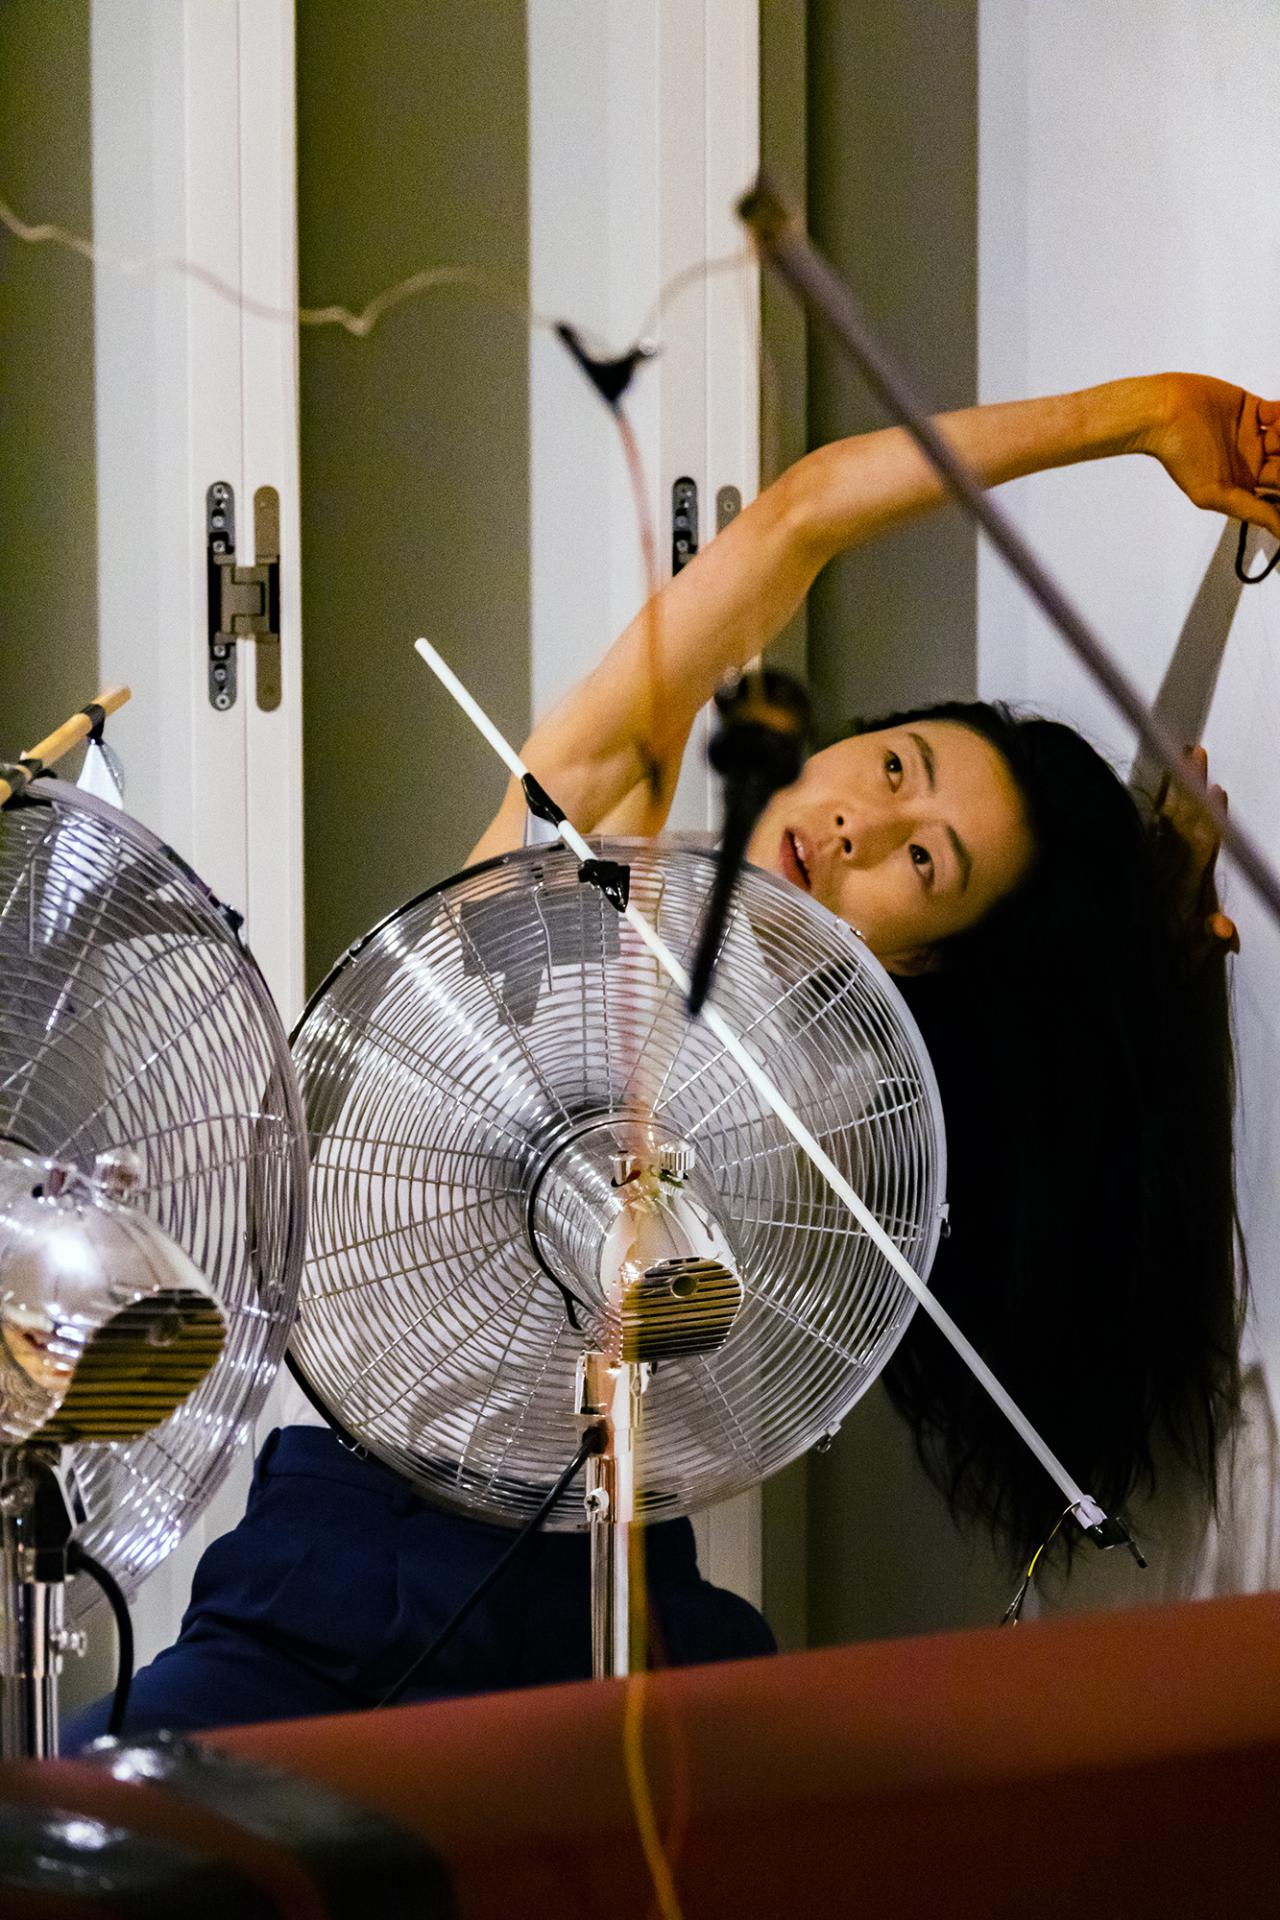 The photo shows a Korean performer bent to the left stretching her arm over her head while a large silver fan is standing in front of her.